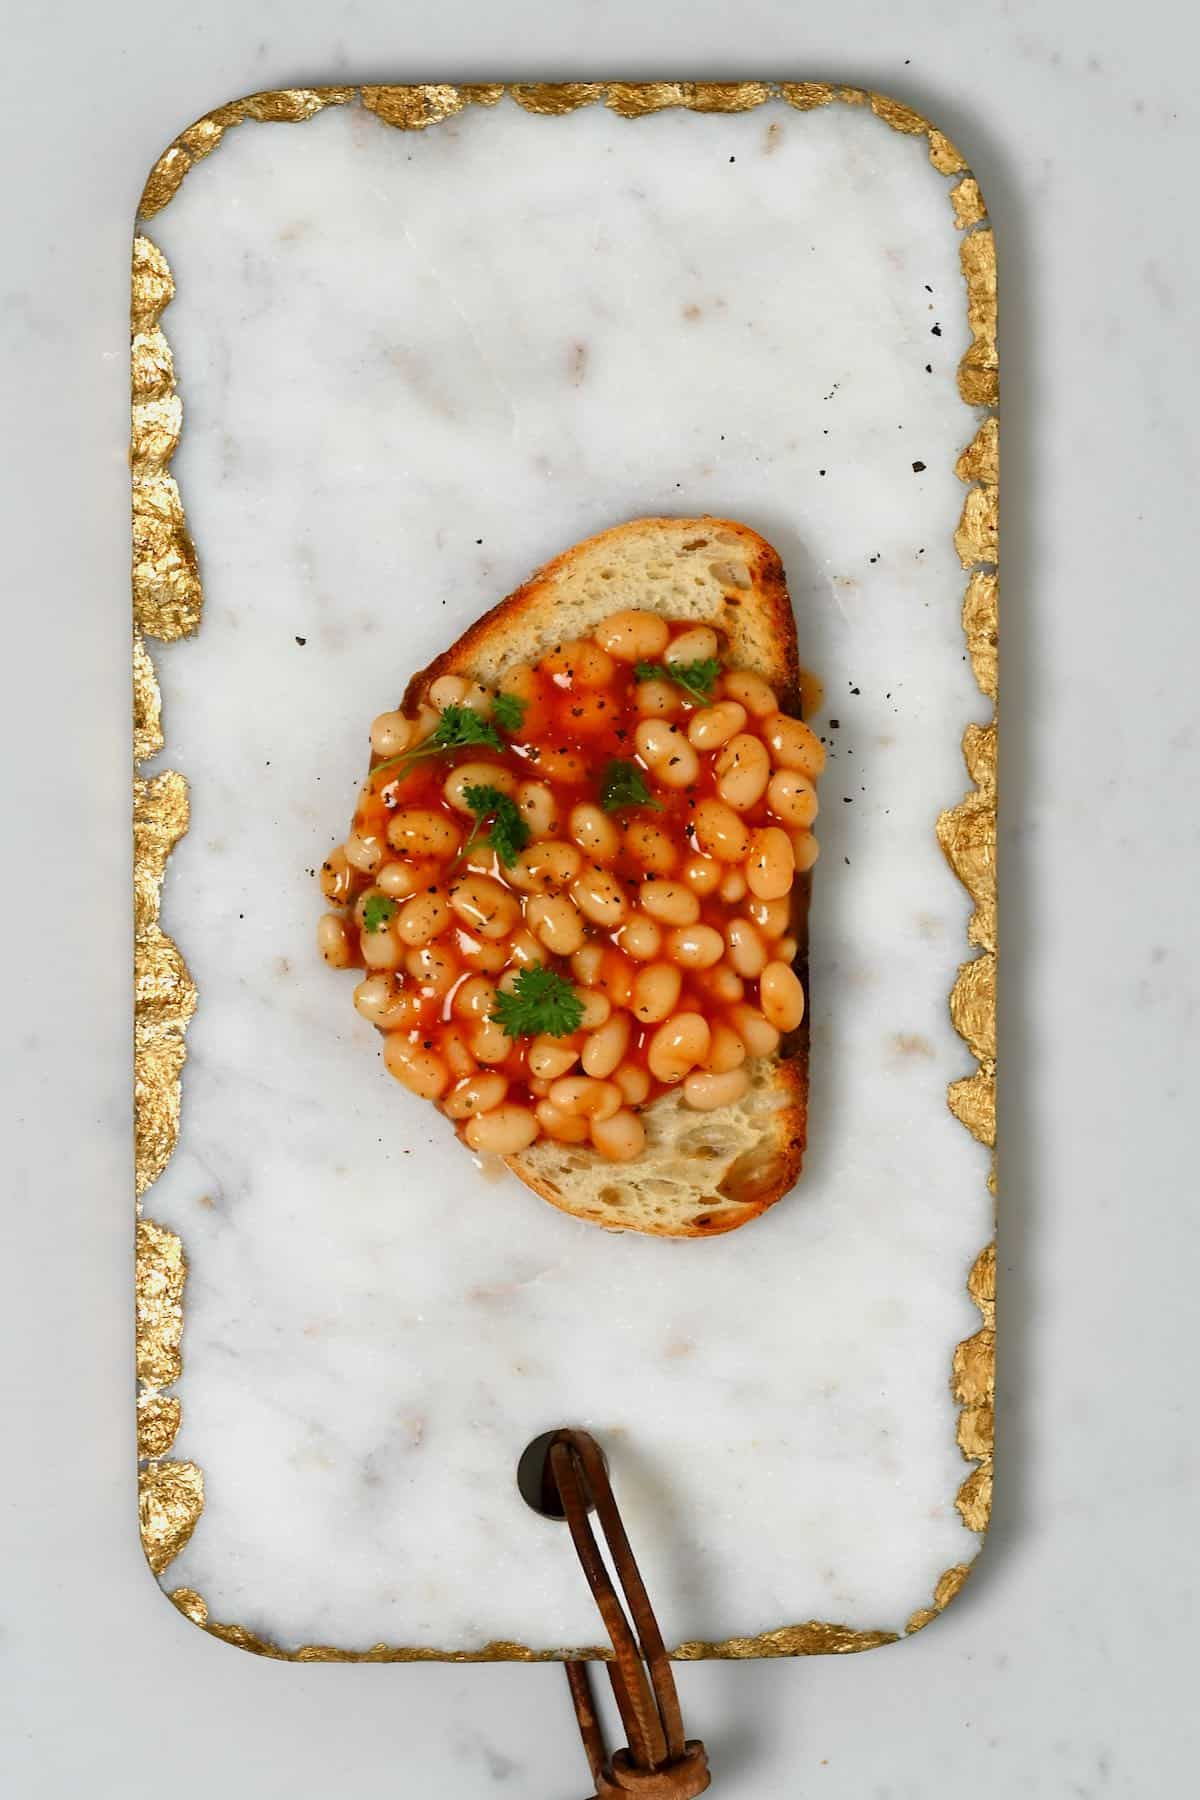 A toast with baked beans